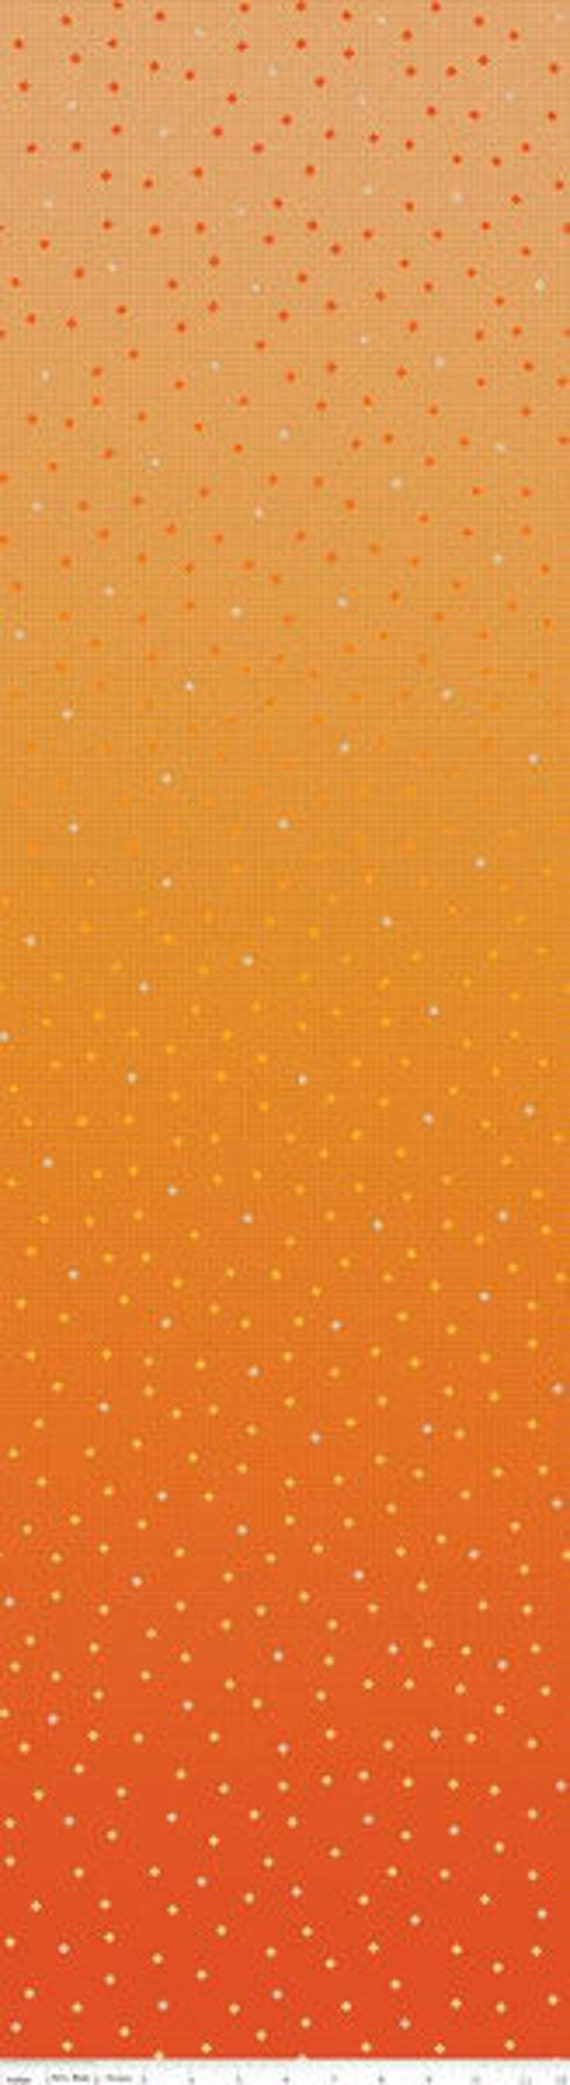 Gem Stones BRIGHTS (1/2 Yard Increments, Cut Continuously) C8350 ORANGE GLOW- by PSD2 for Riley Blake Designs